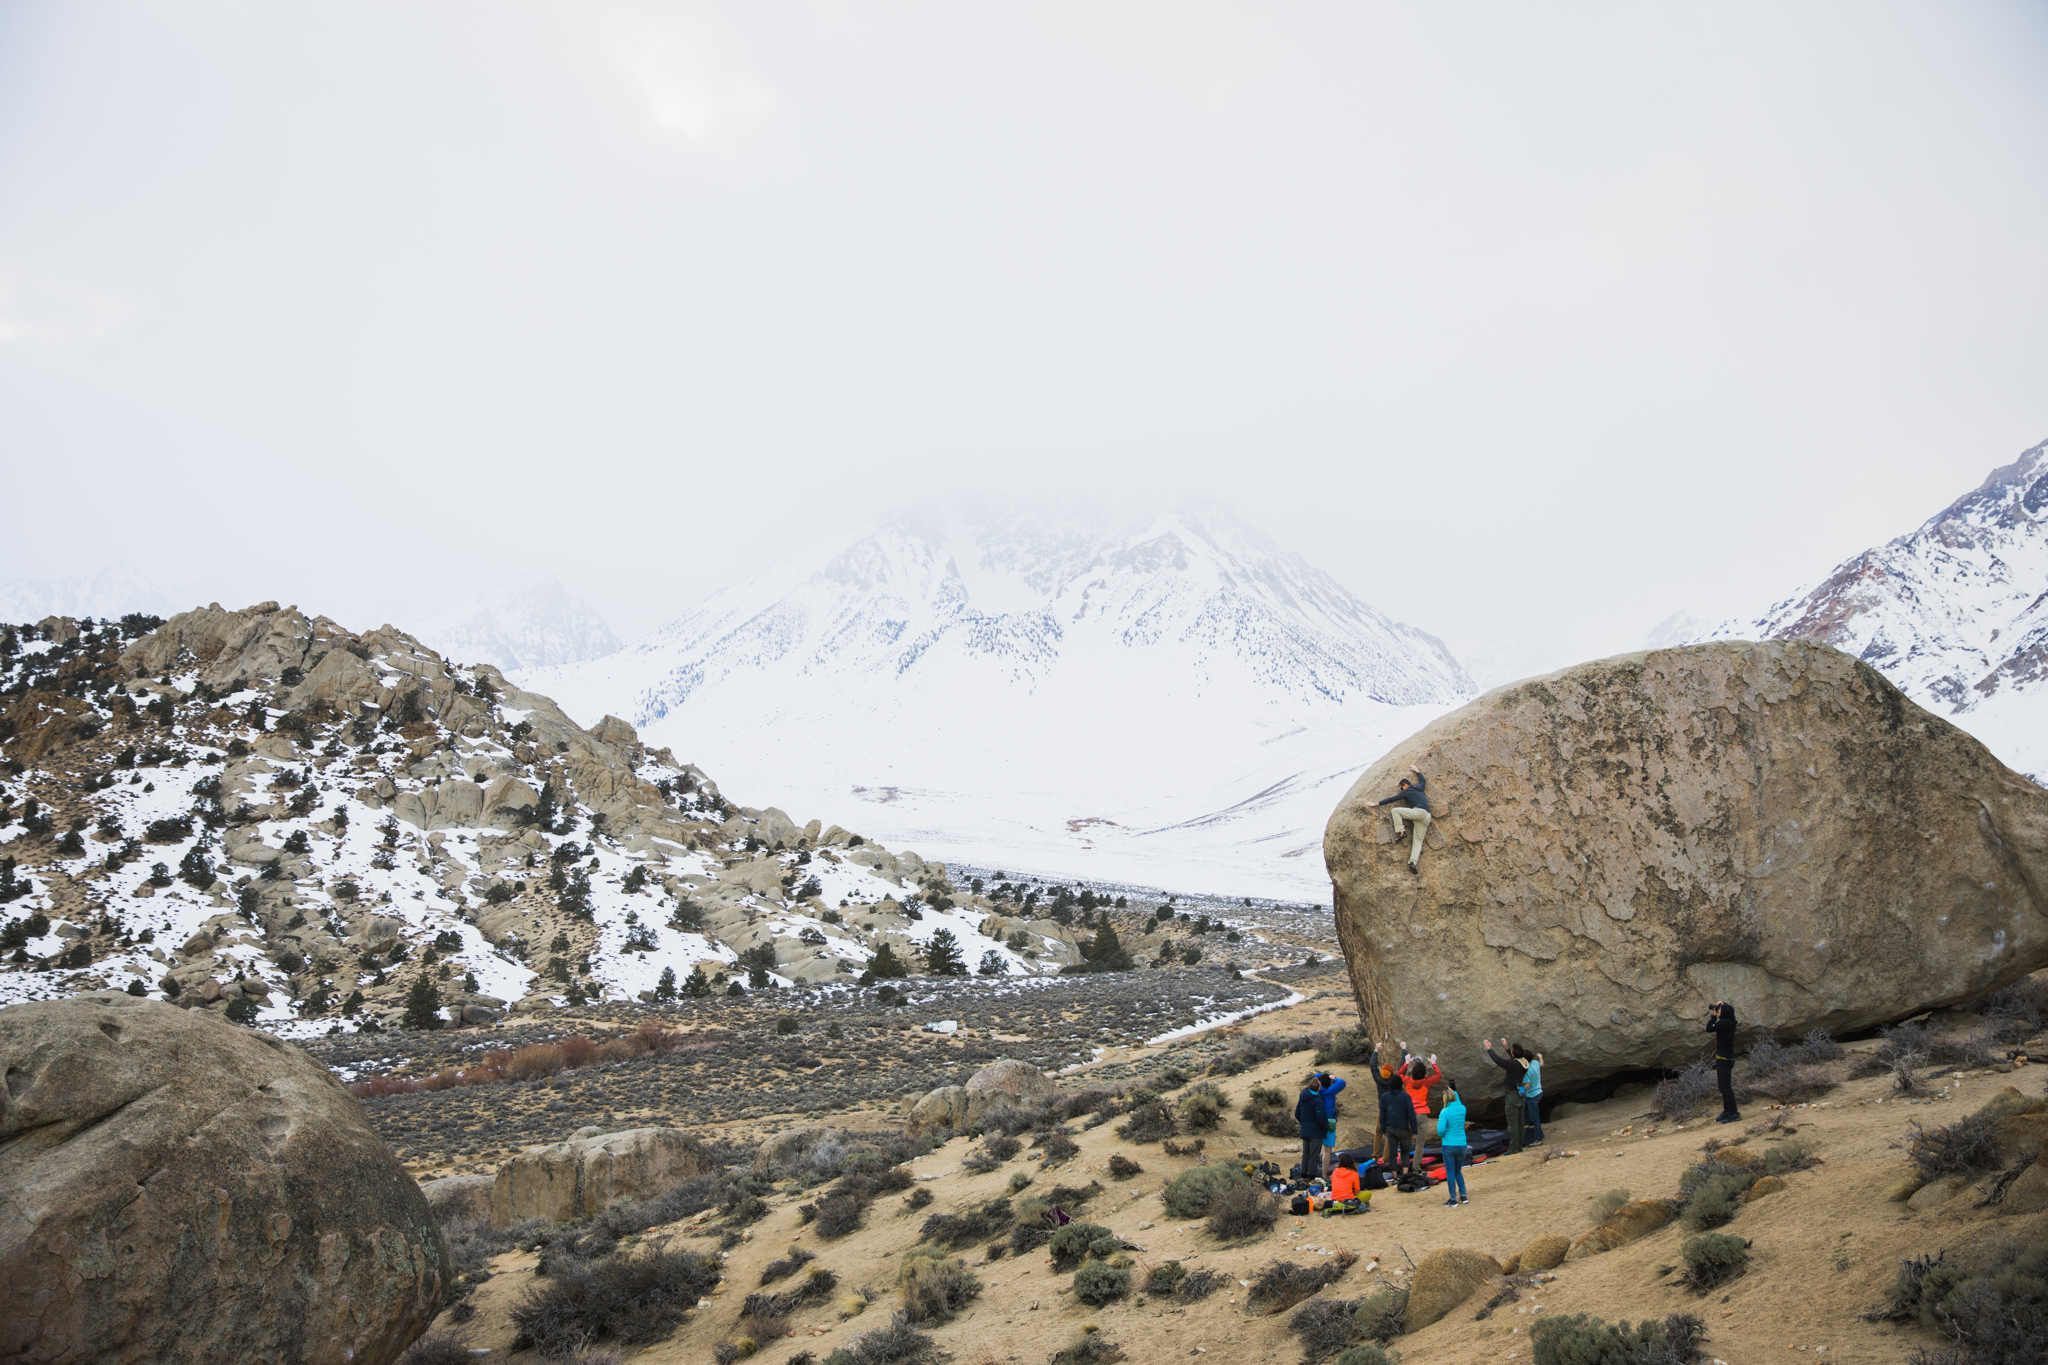 climbing in california | utah and california adventure elopement photographers | the hearnes adventure photography | www.thehearnes.com